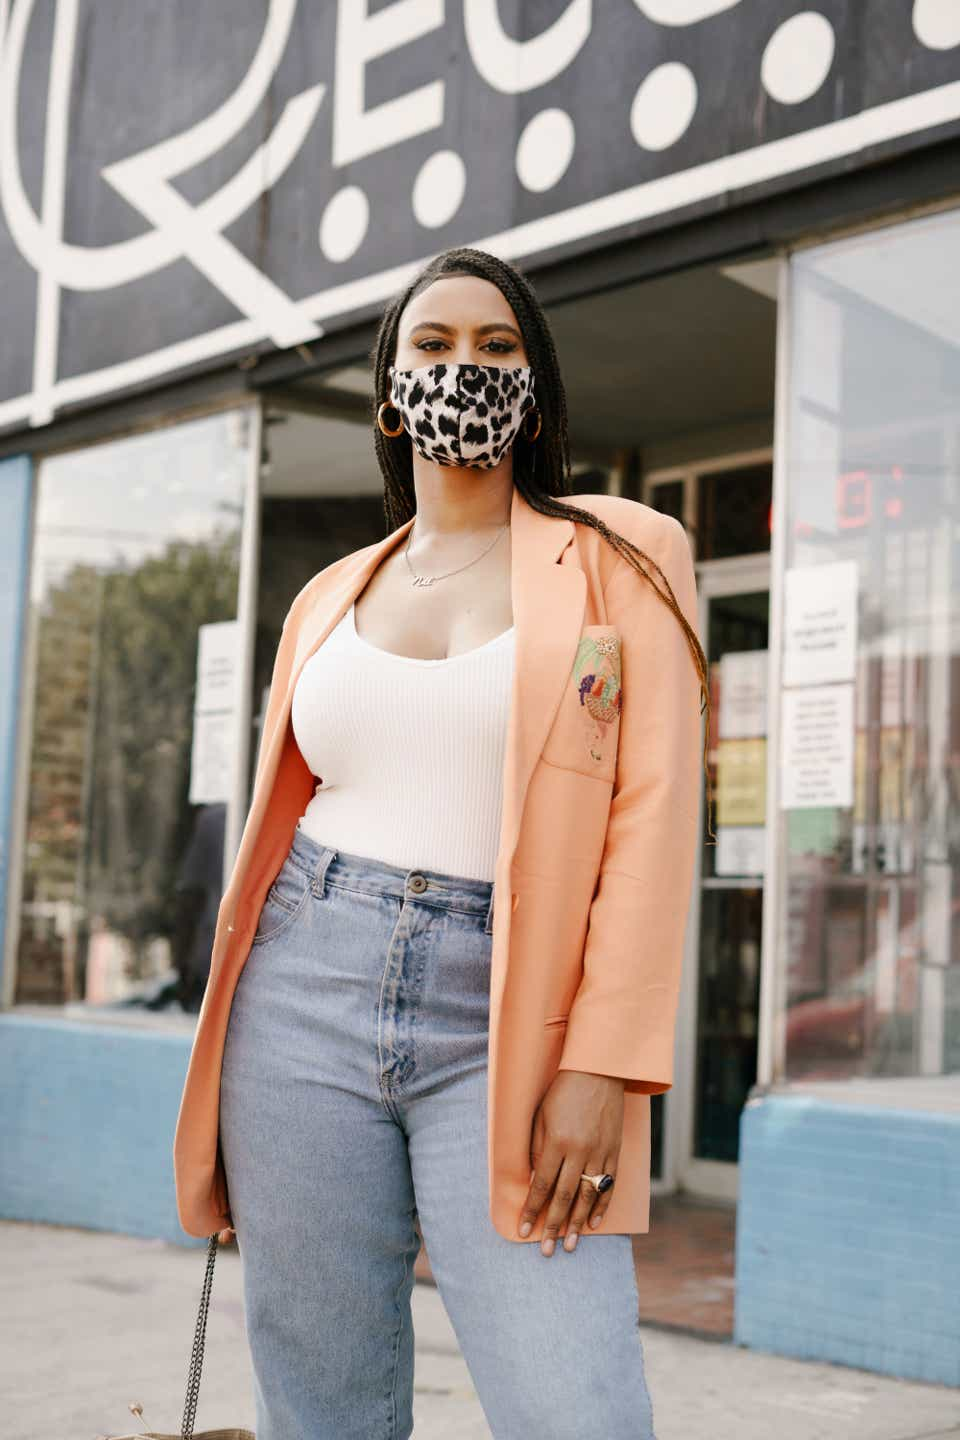 Janai is wearing a leopard print face mask, which she paired with a white tank top, a peach-colored blazer, and light-wash jeans.